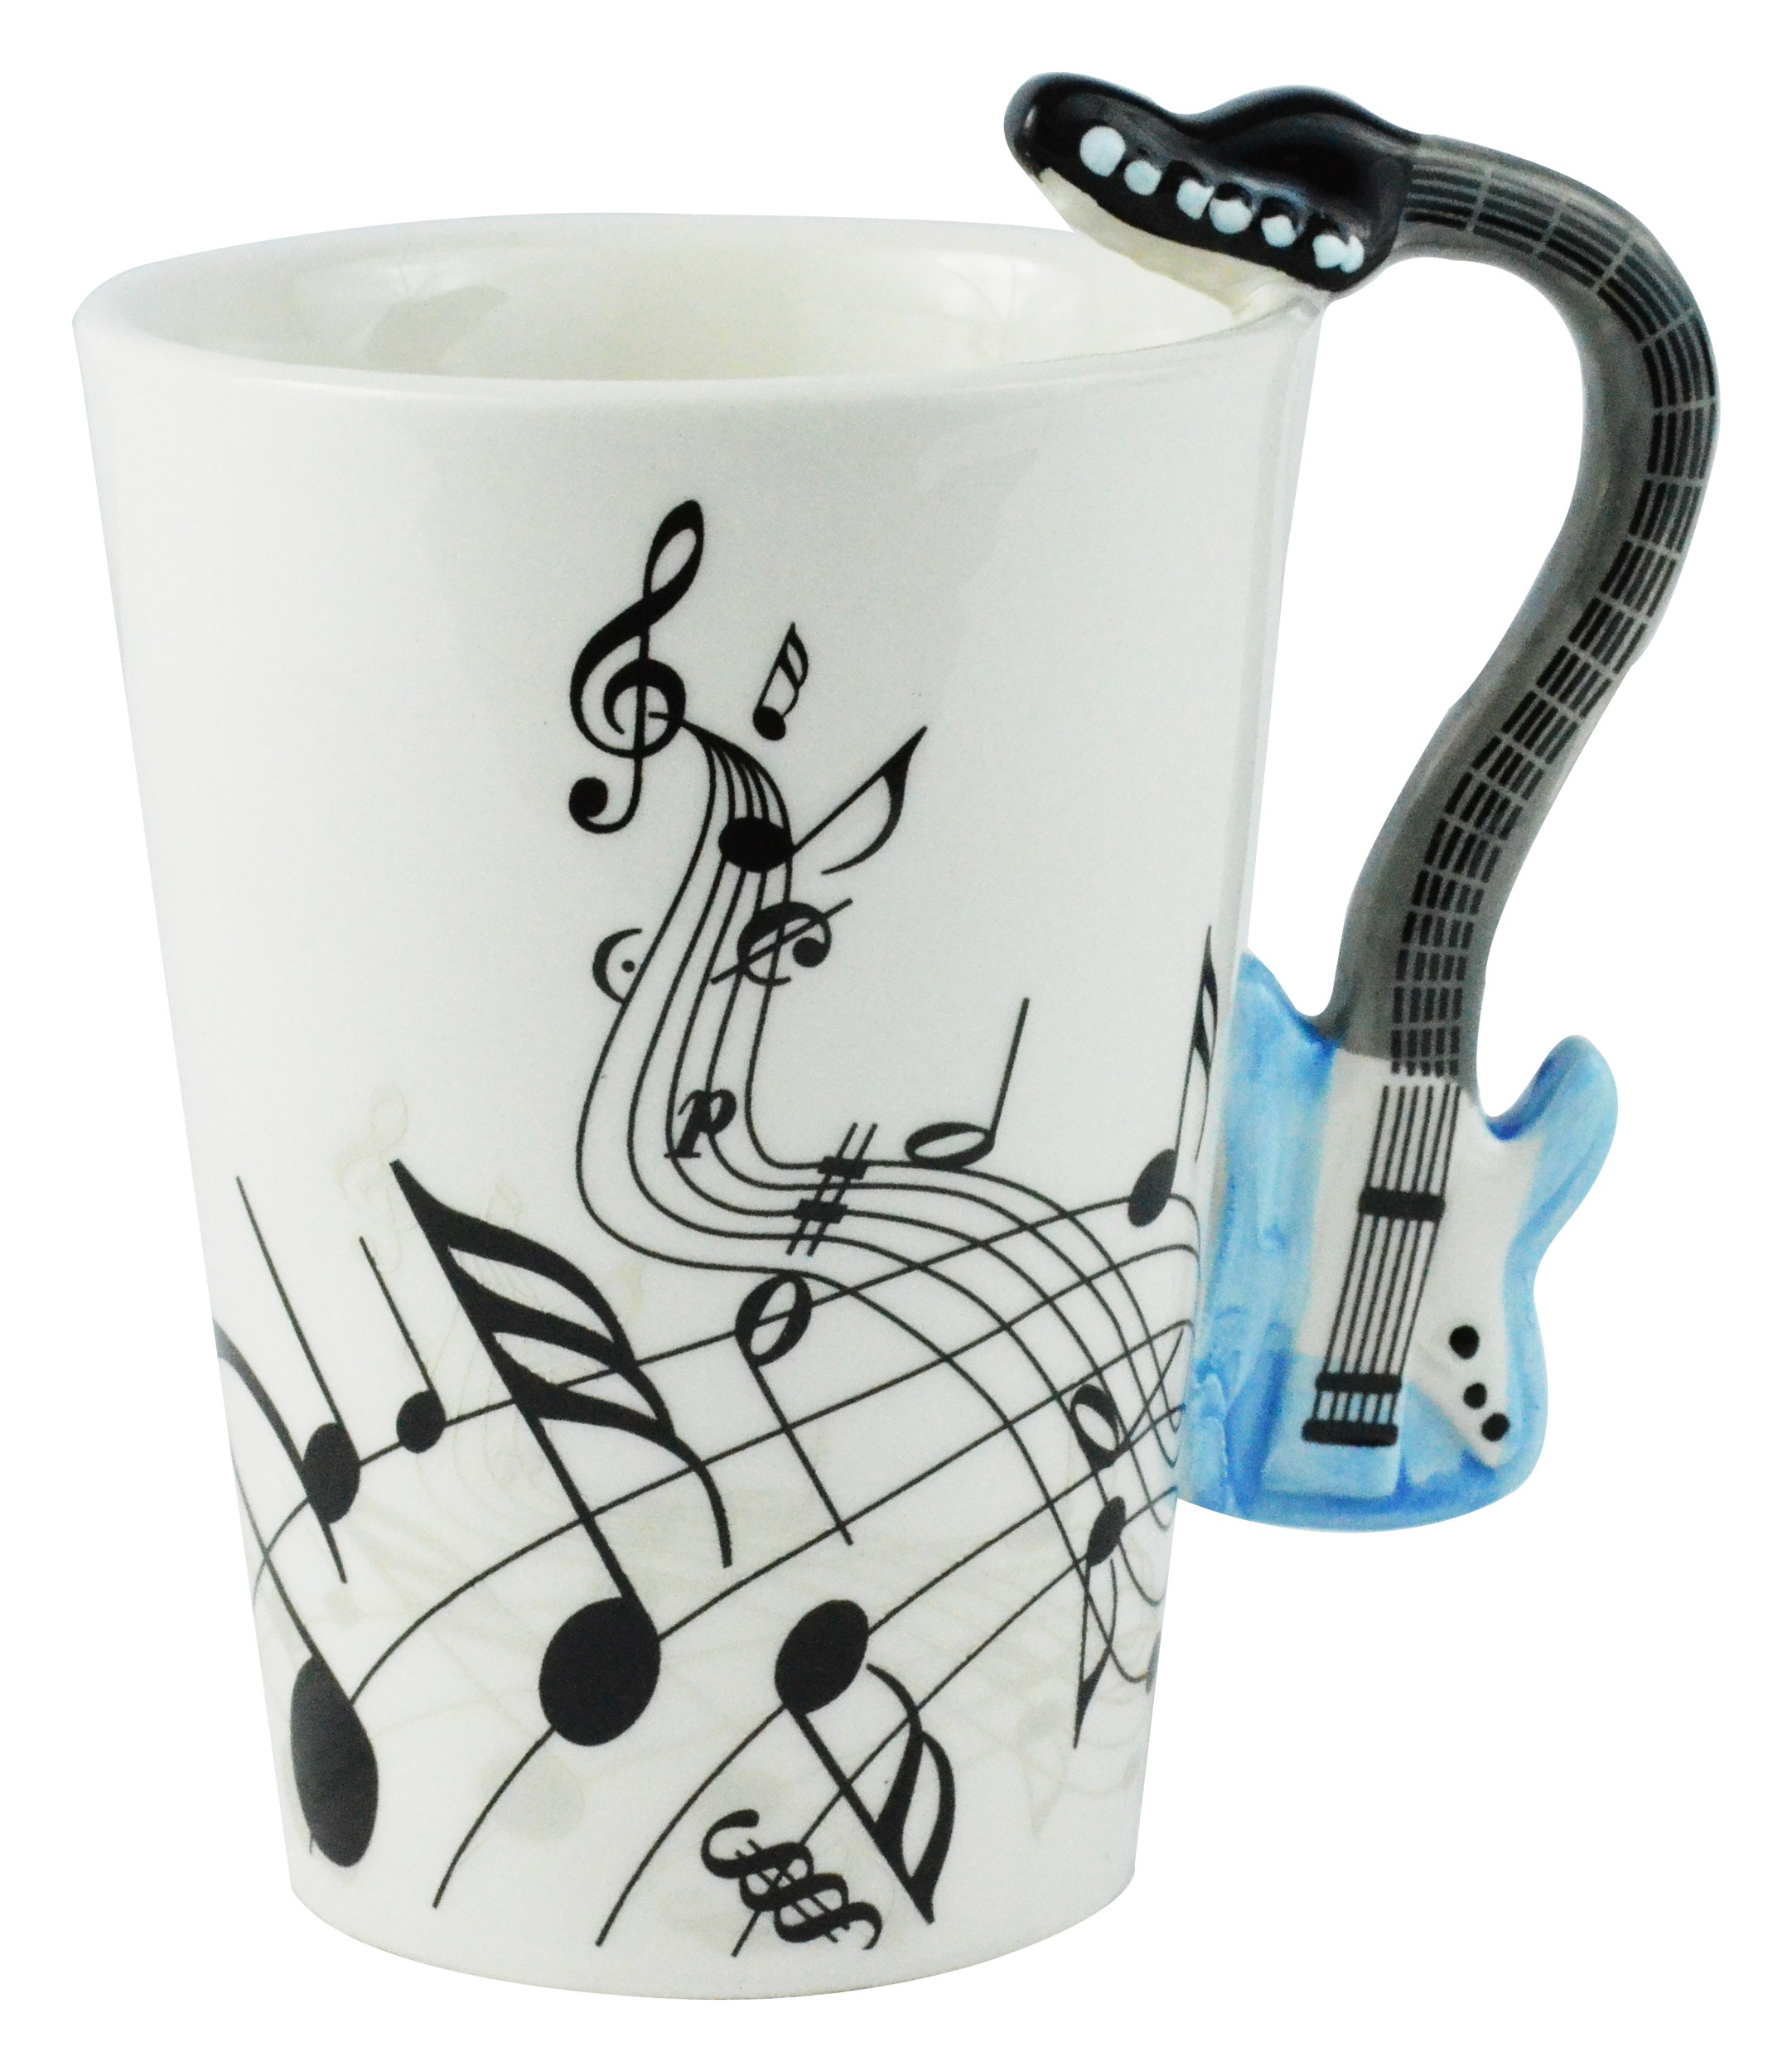 Blue Electric Guitar Ceramic Mug